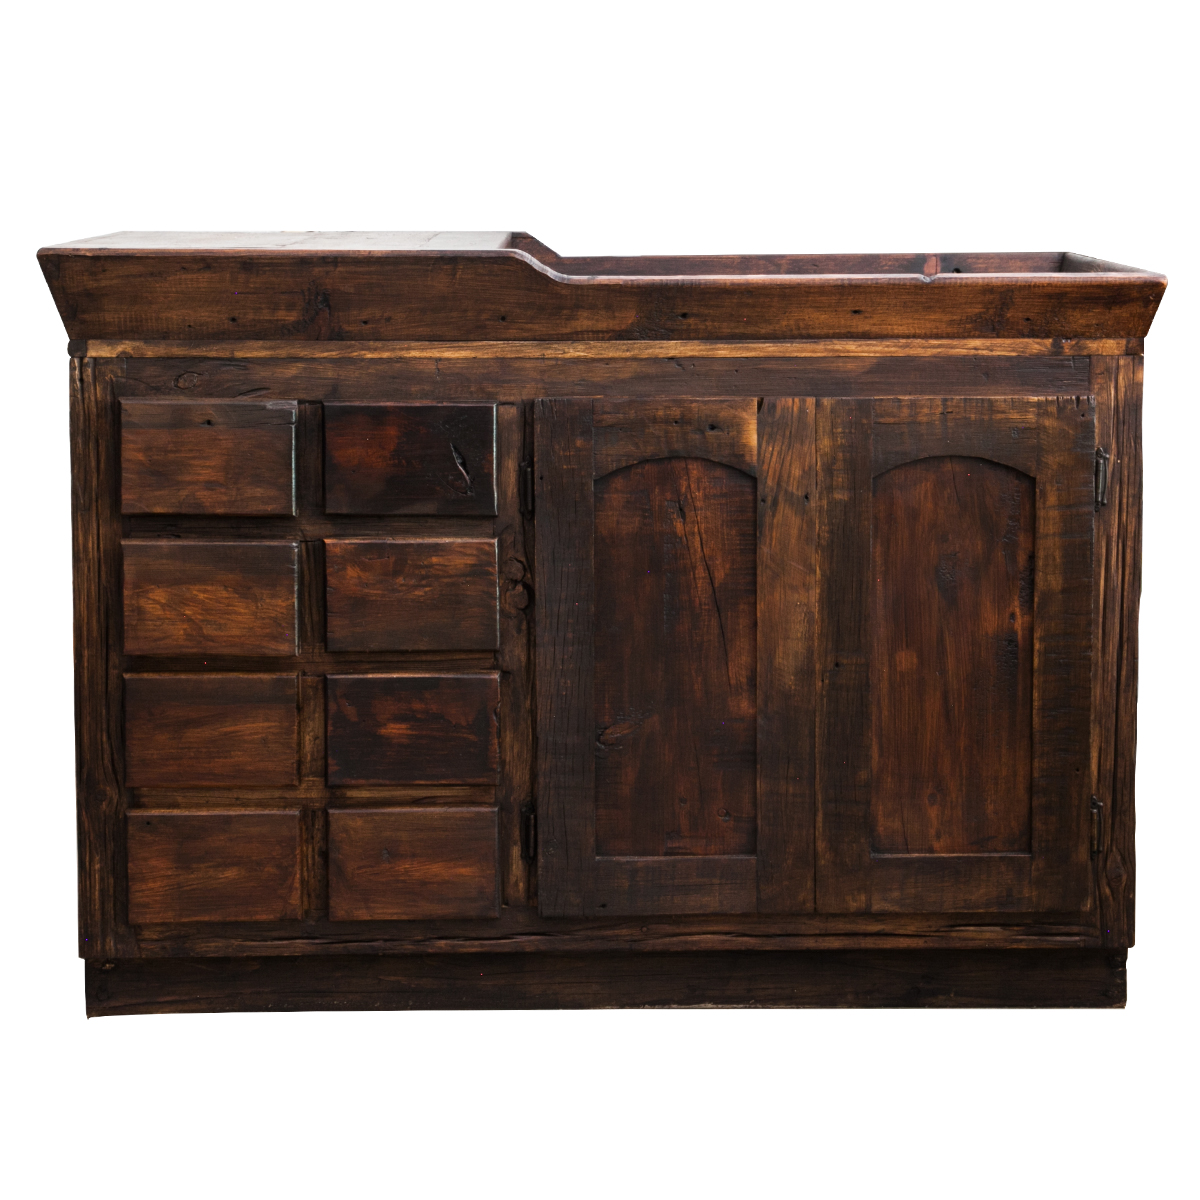 Custom Bathroom Vanities Michigan reclaimed wood vanities | buy reclaimed wood vanity online